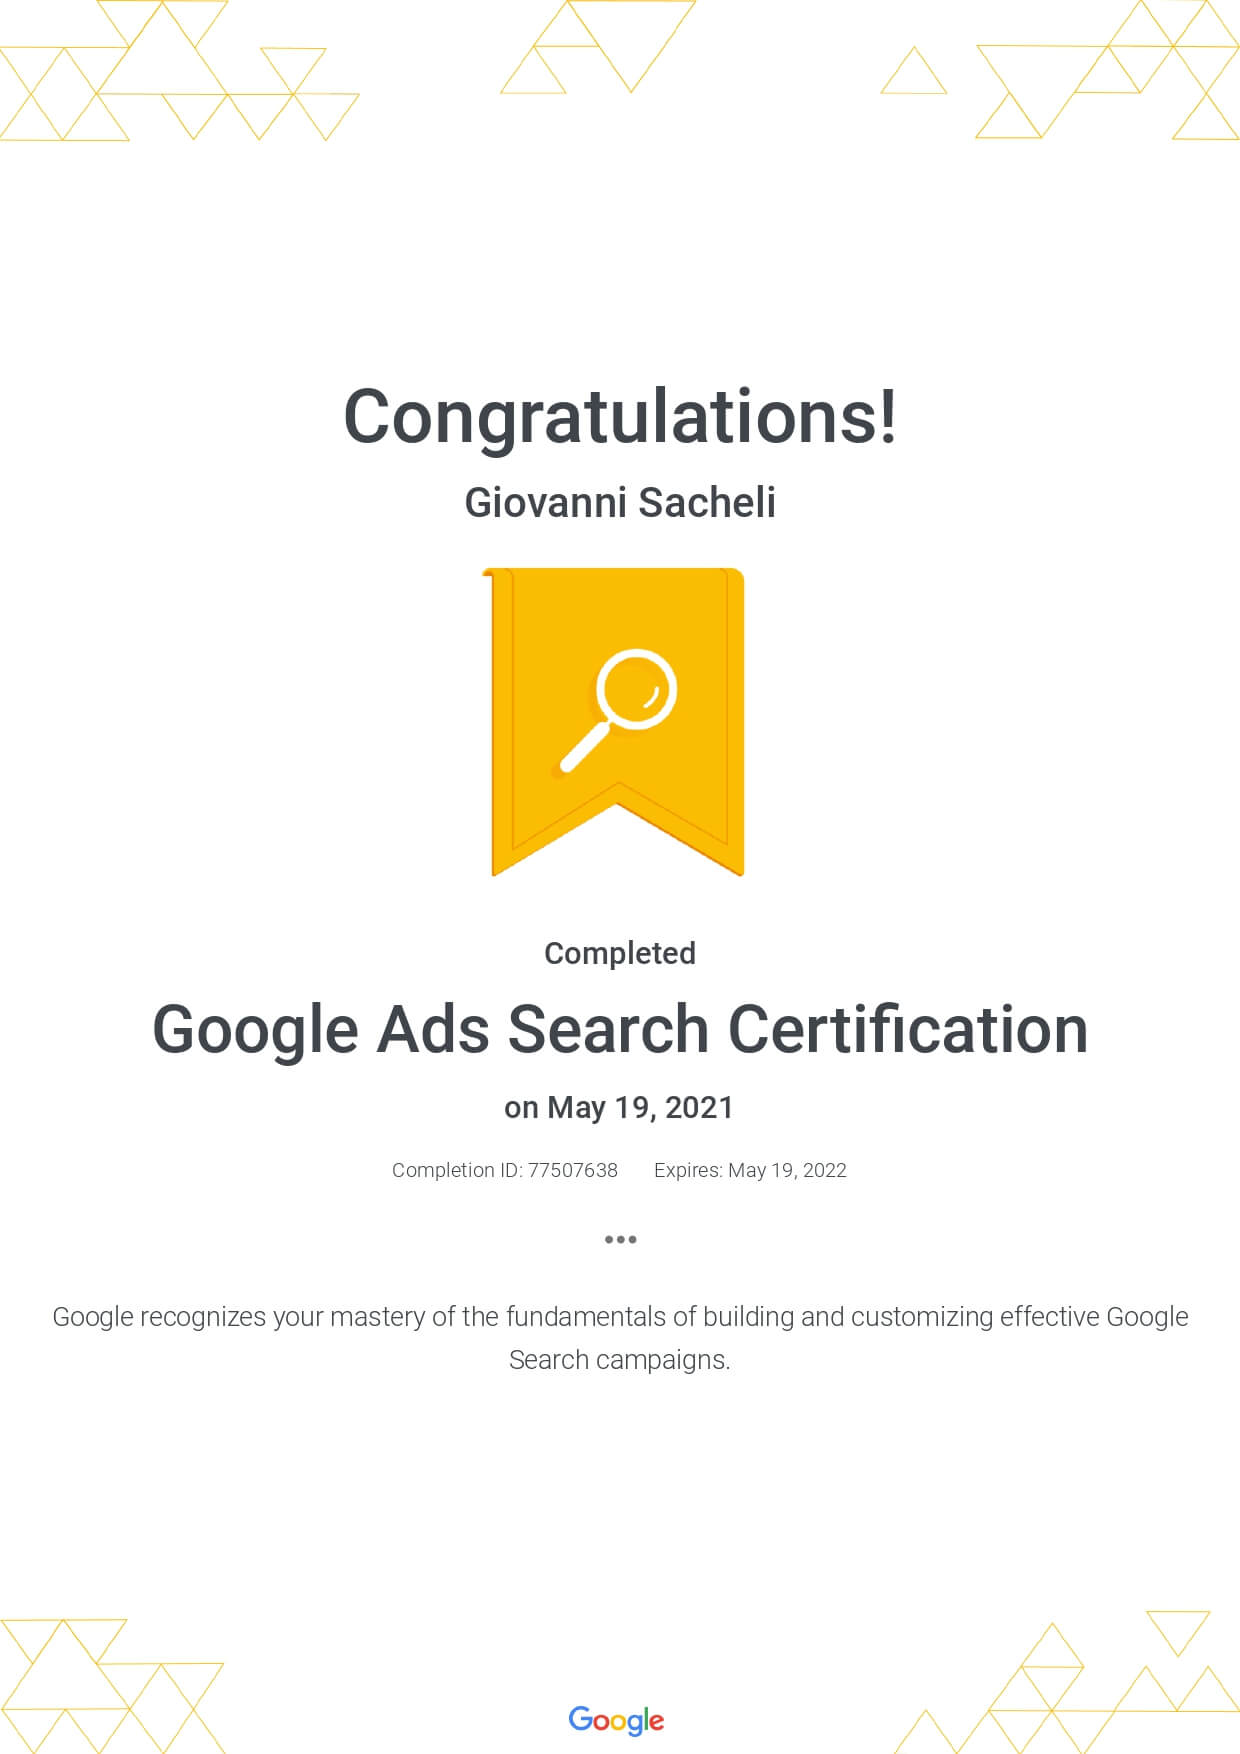 Google Ads Search Certification 2021